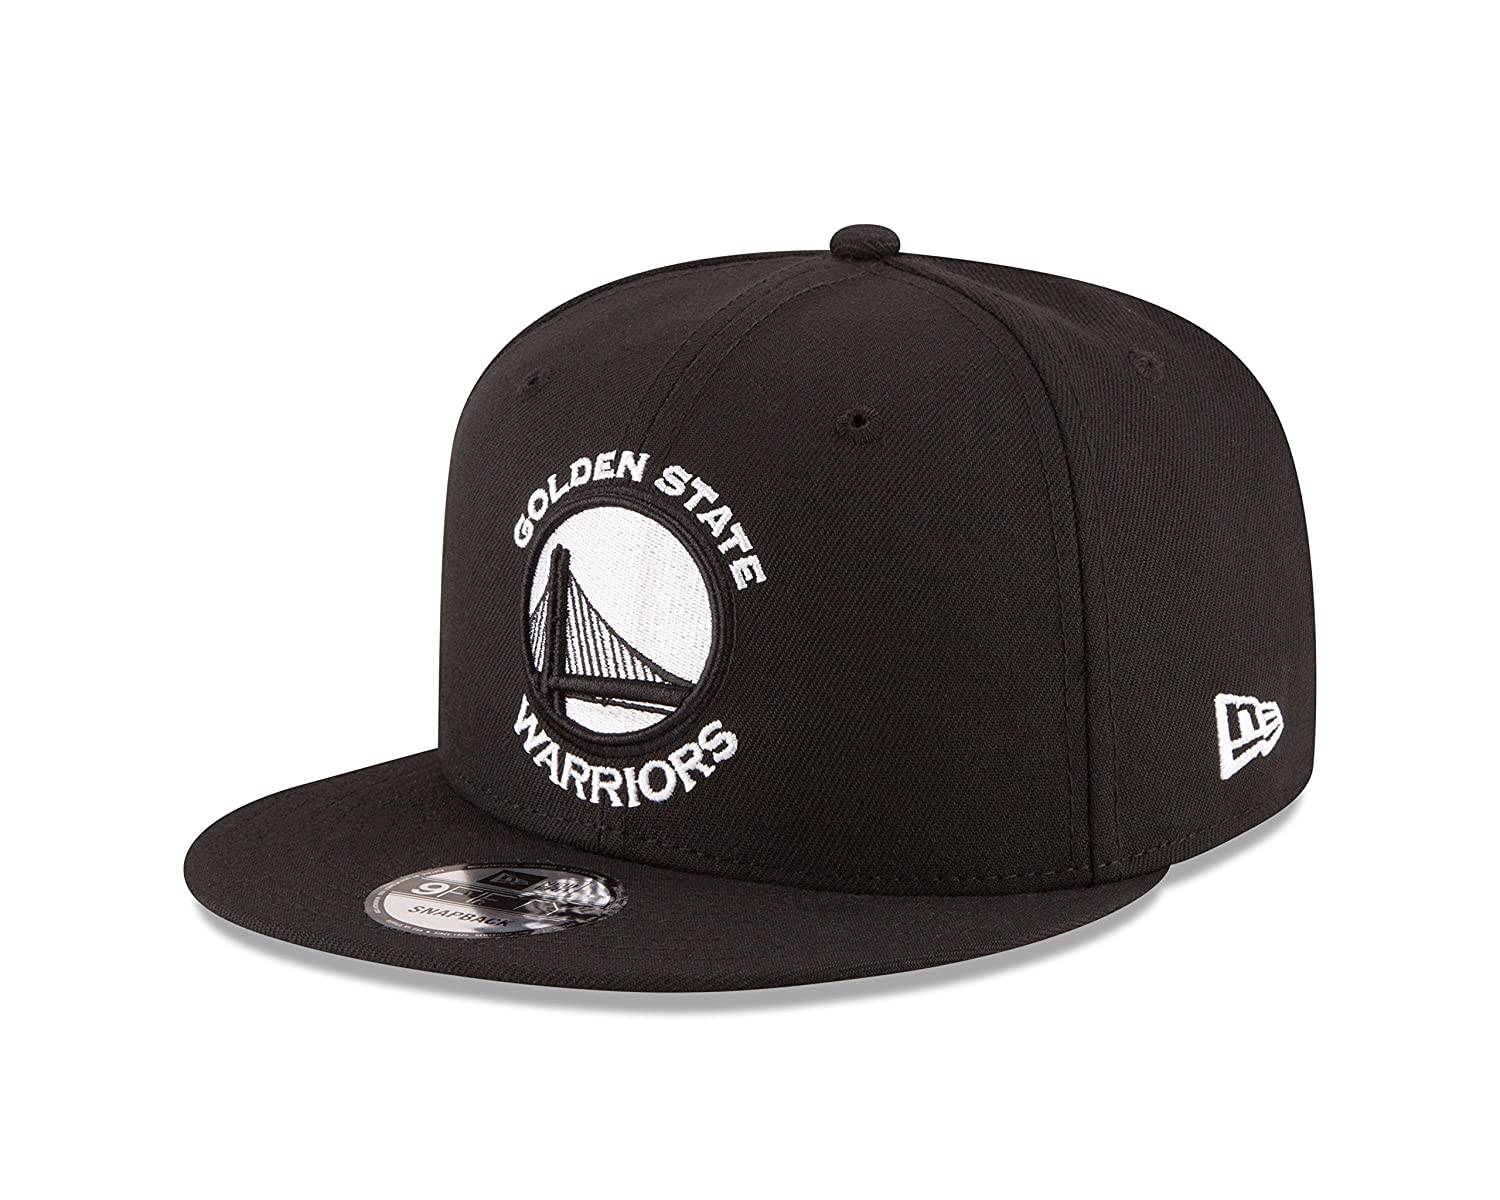 Amazon.com   New Era NBA Golden State Warriors Men s 9Fifty Snapback ... 6a6767ae4af